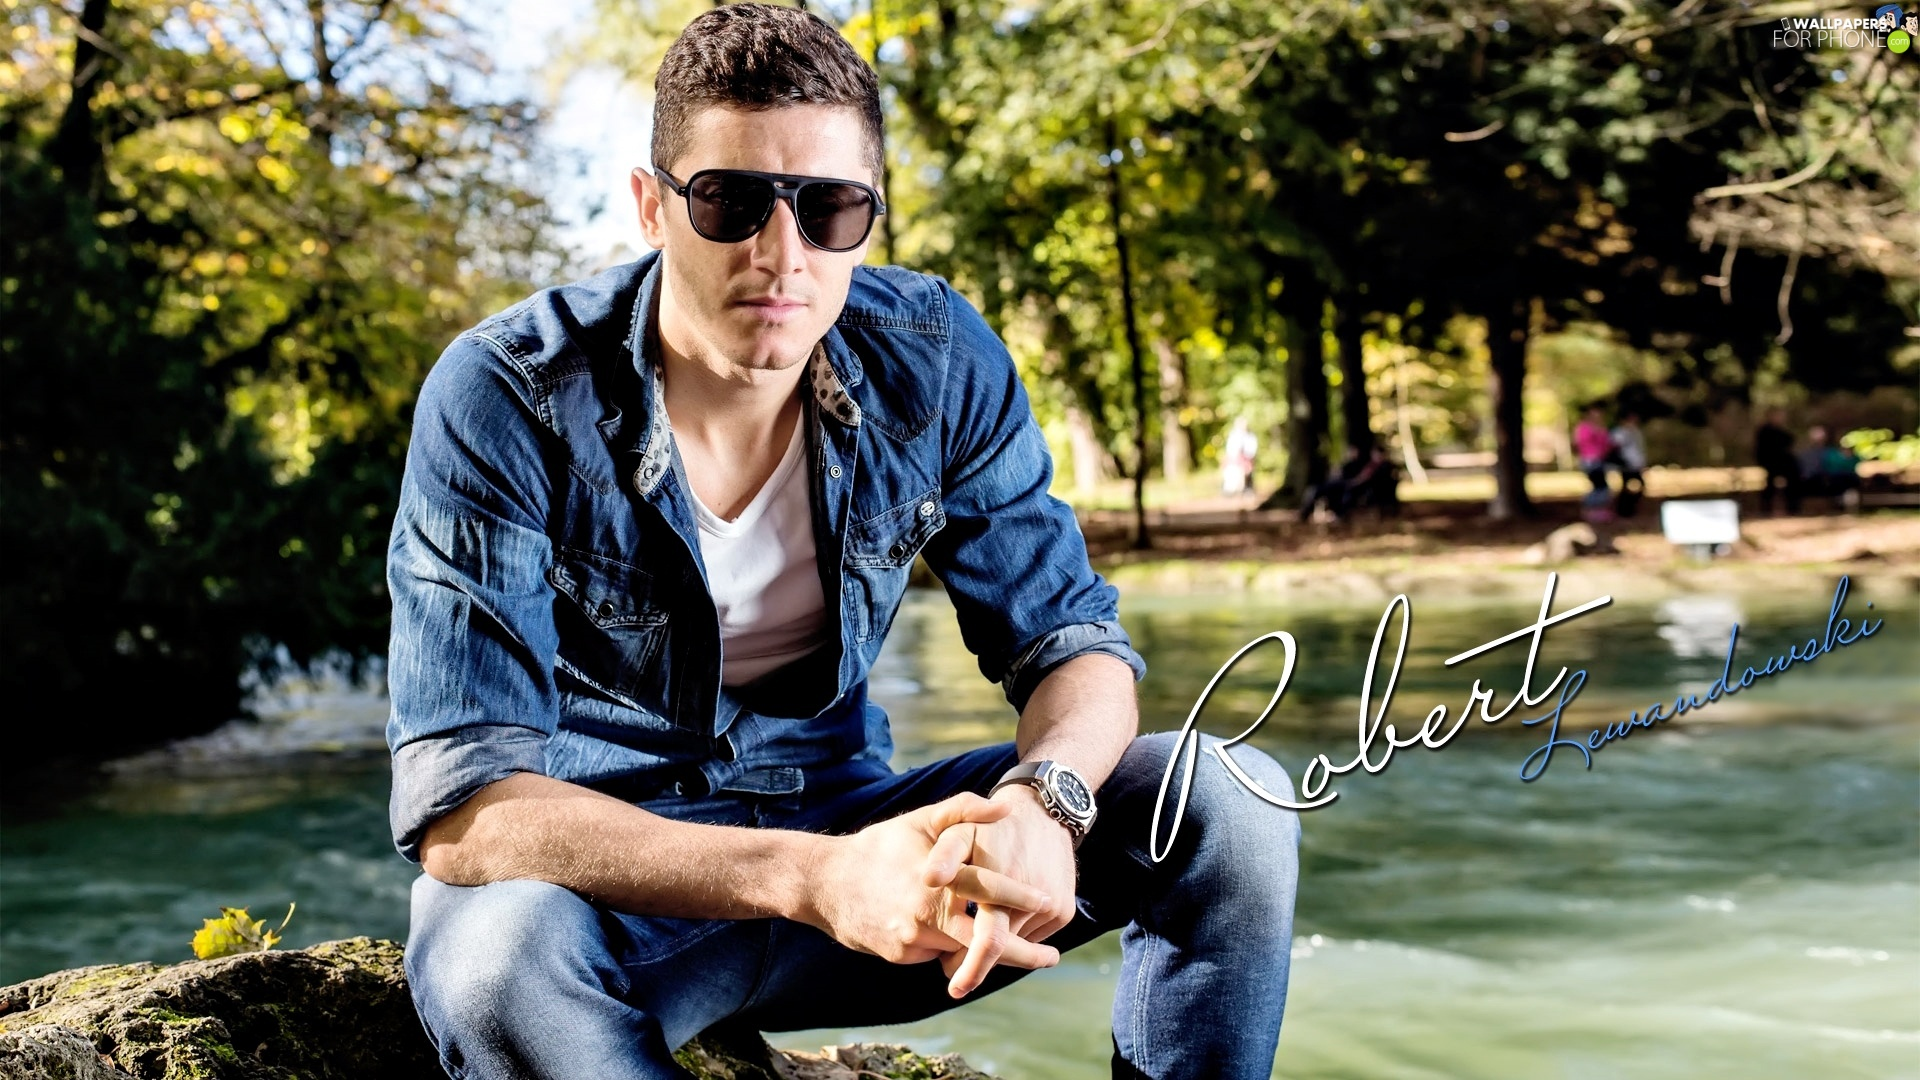 footballer, Robert Lewandowski